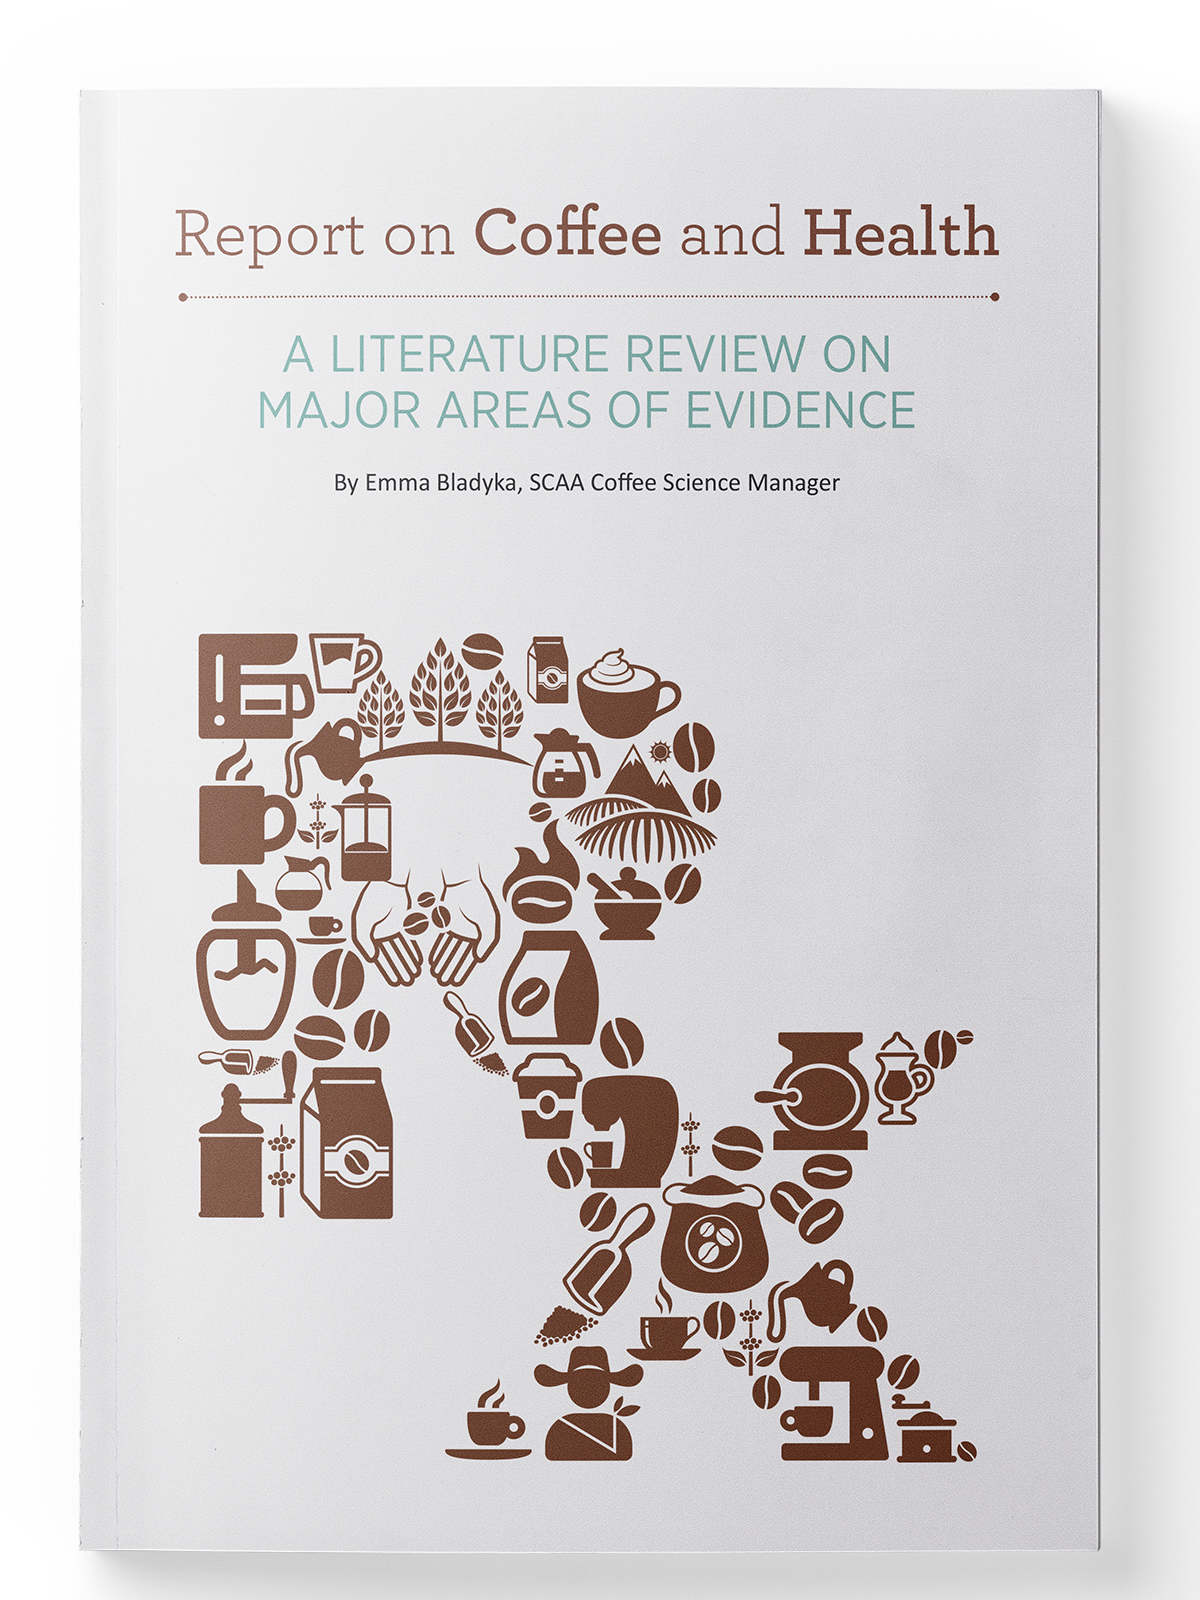 Coffee & Health (Literature Review)   Coffee is one of the most commonly consumed beverages around the world, but for many years, its effects on health have been disputed within the medical community. In recent decades, modern research has dispelled most of the myths surrounding coffee's effects on health. The following health topics are perhaps the most discussed in association with coffee intake and are explored in this report: Mental Performance, Neurodegenerative Disorders, Alzeihemer's Disease, Parkinson's Disease, Sports Performance, Type II Diabetes, Liver Health Cancer, Cardiovascular Health, Cholesterol, Blood Pressure, Pregnancy and Fetal Health.   Member Access   Buy Now